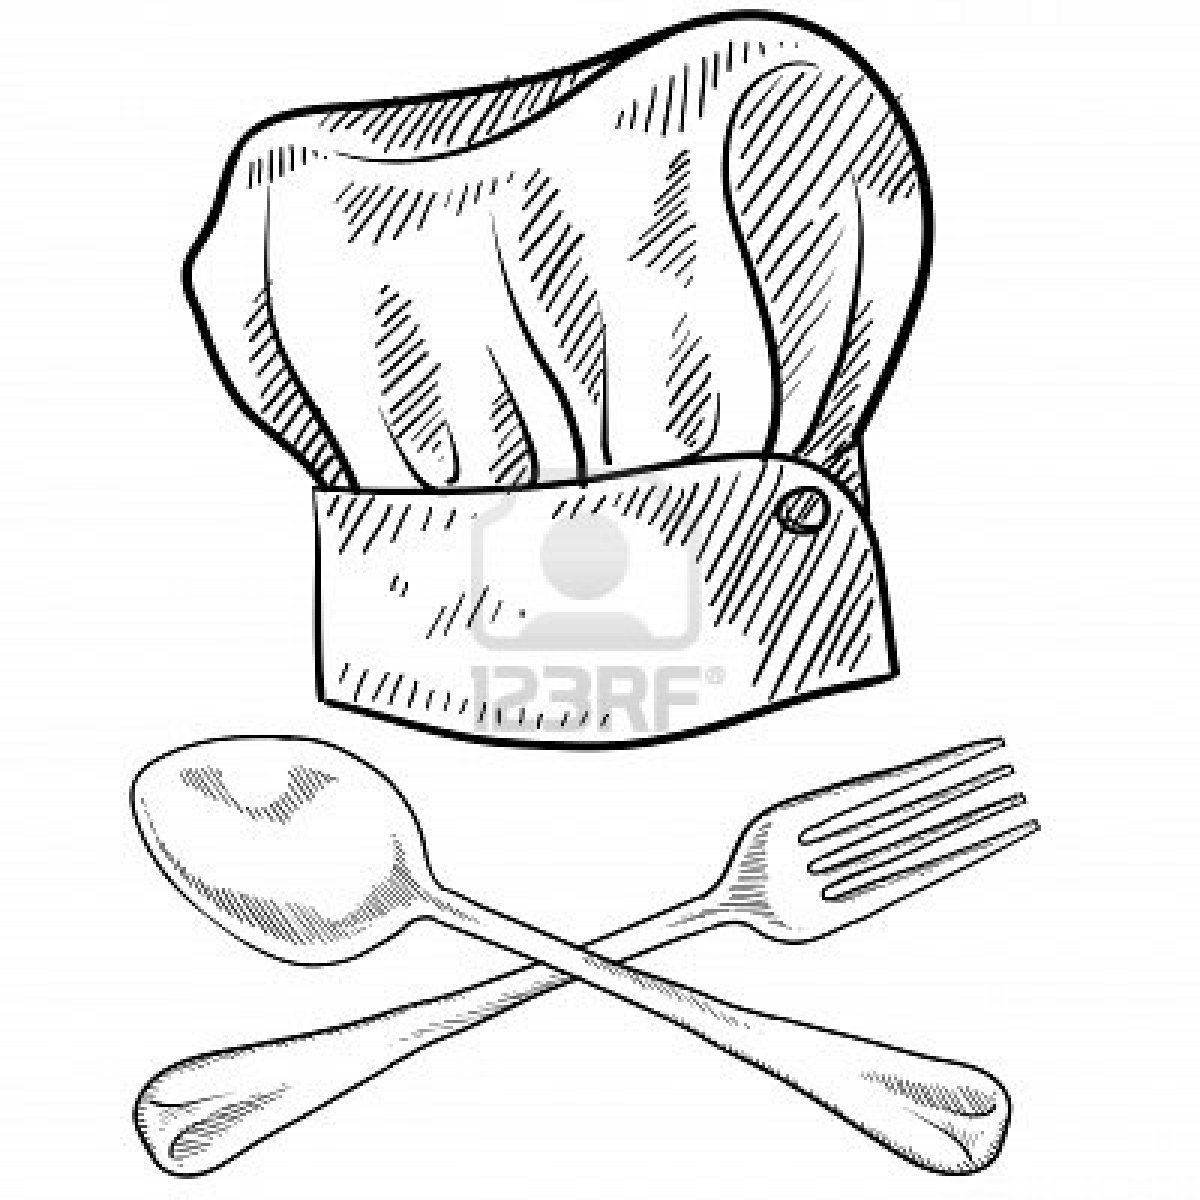 doodle style chef hat with fork and spoon stock photo creativity Pub Cook Resume doodle style chef hat with fork and spoon stock photo